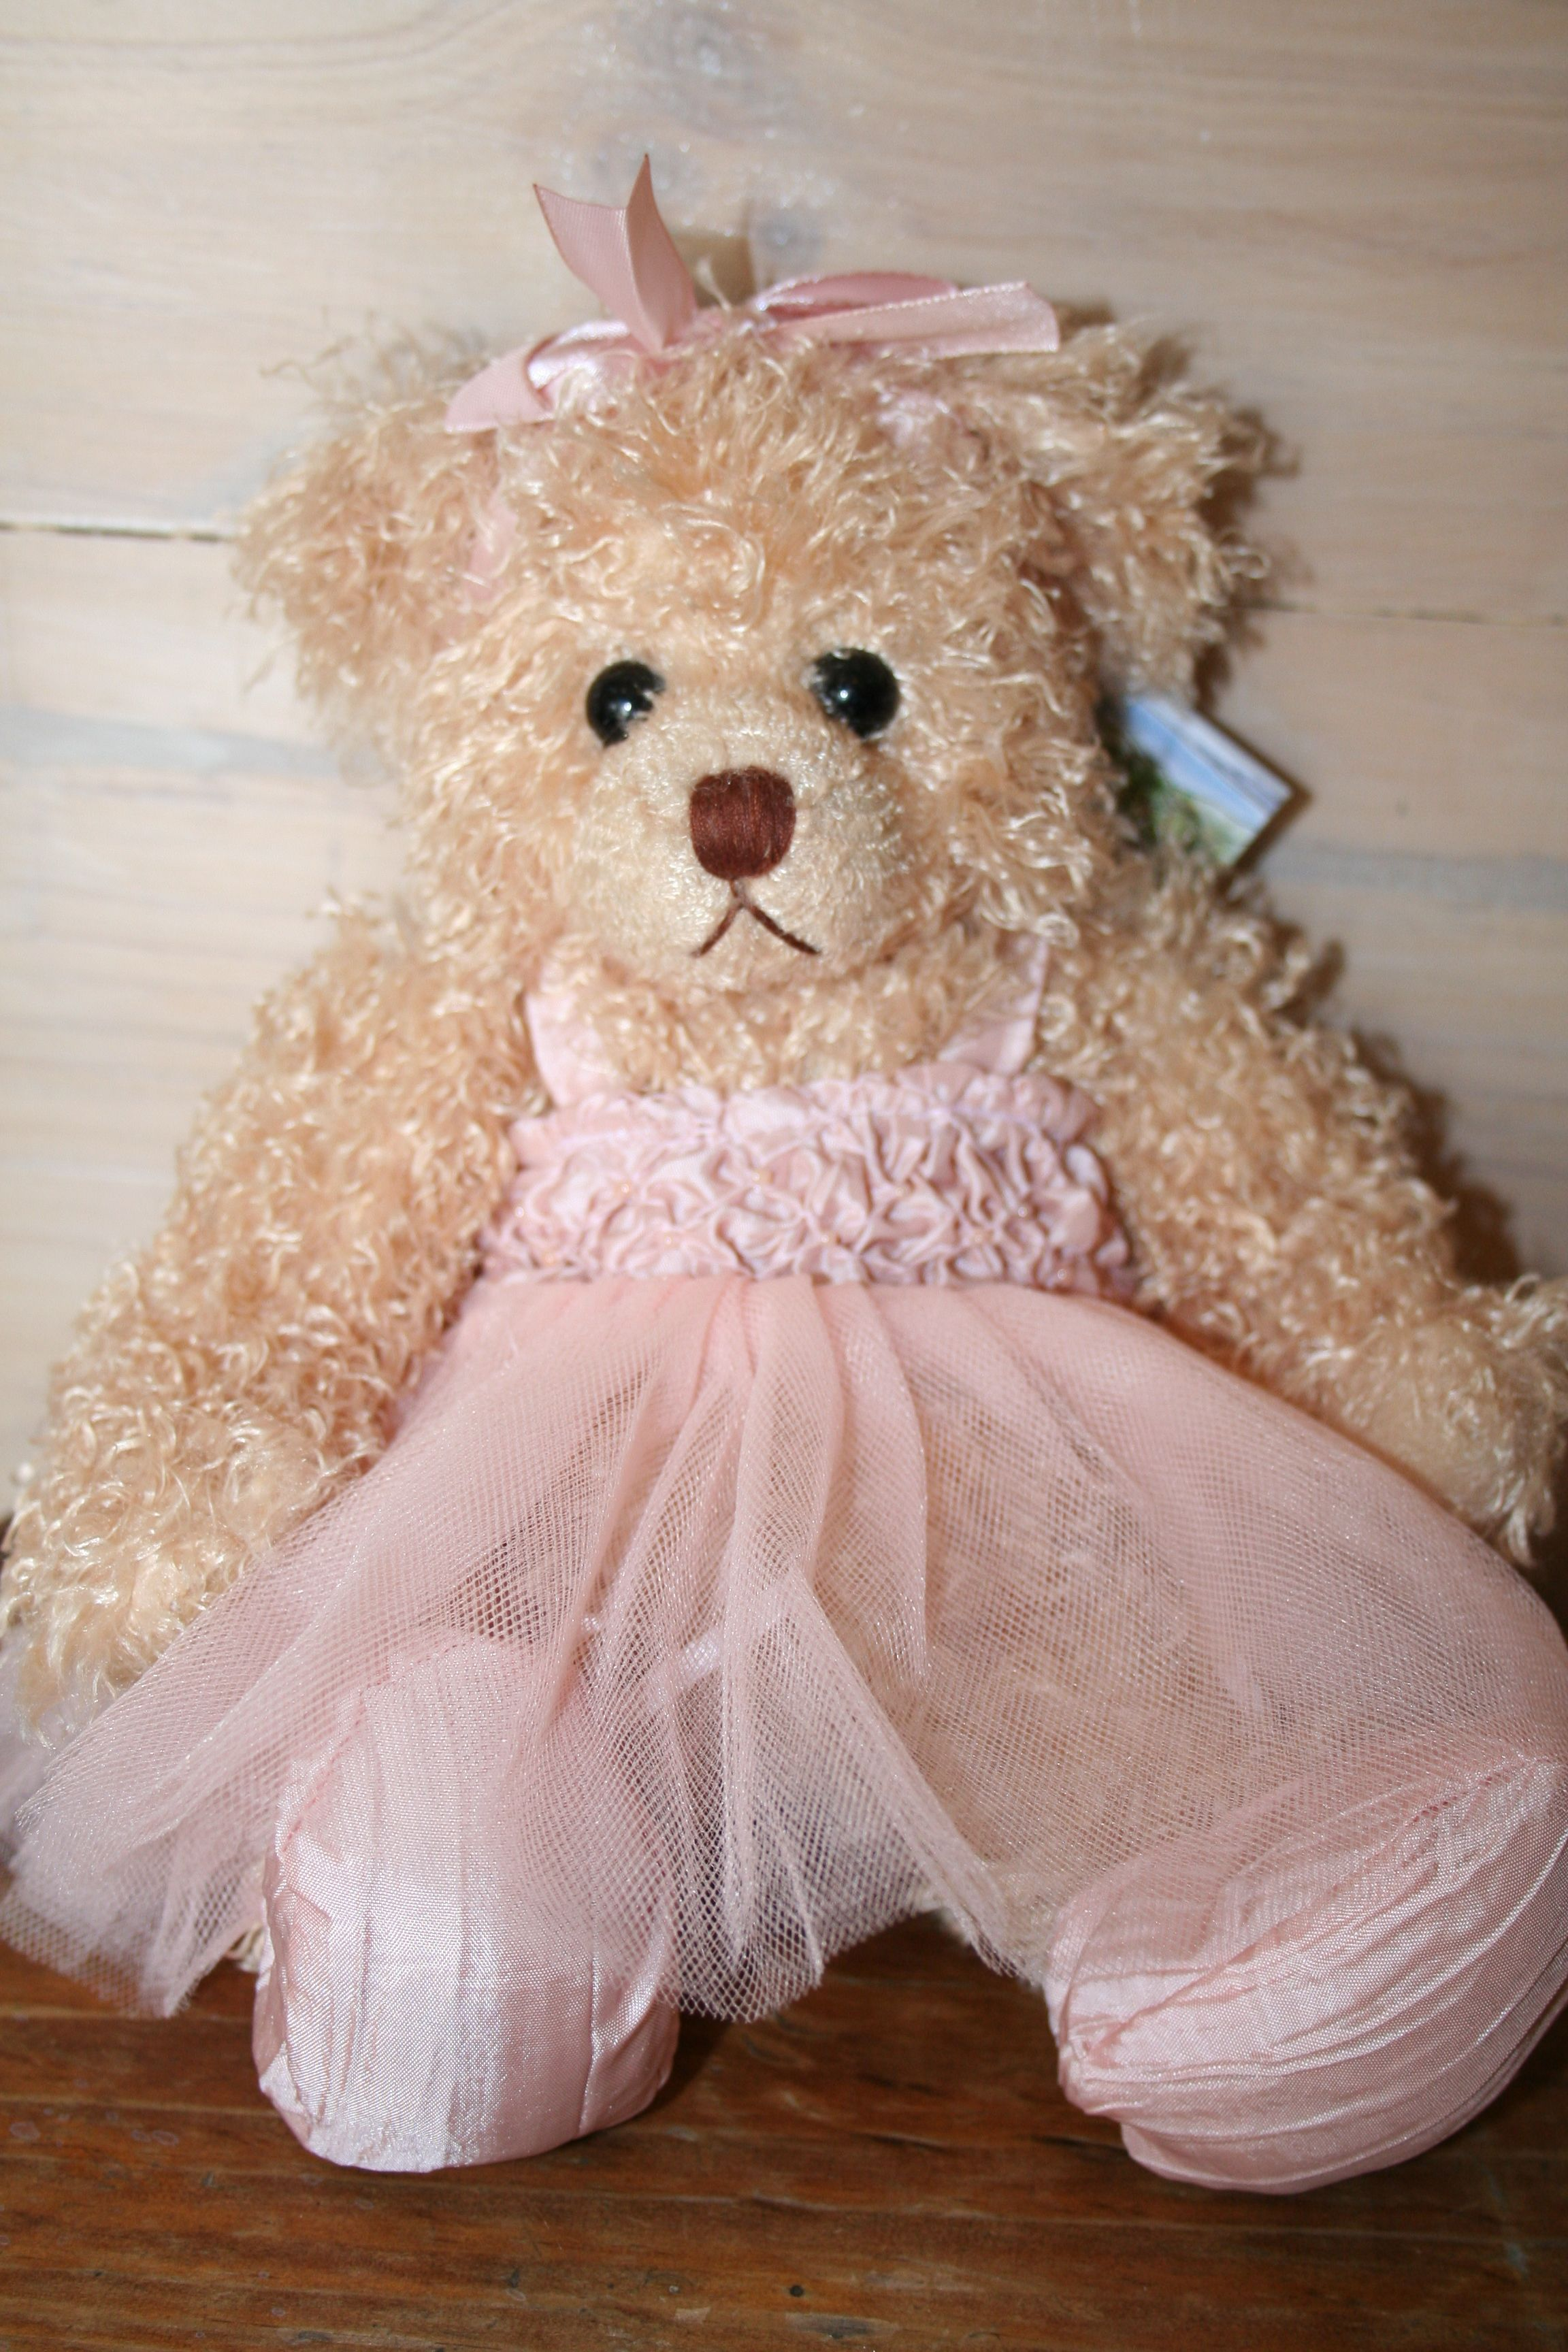 Juliana Is A Sweet Little Ballerina She Is From The Echuca Collection Of Settler Bears Price Aud 42 75 Ship Worldwide Email Toodled Bear Teddy Bear Bear Hug